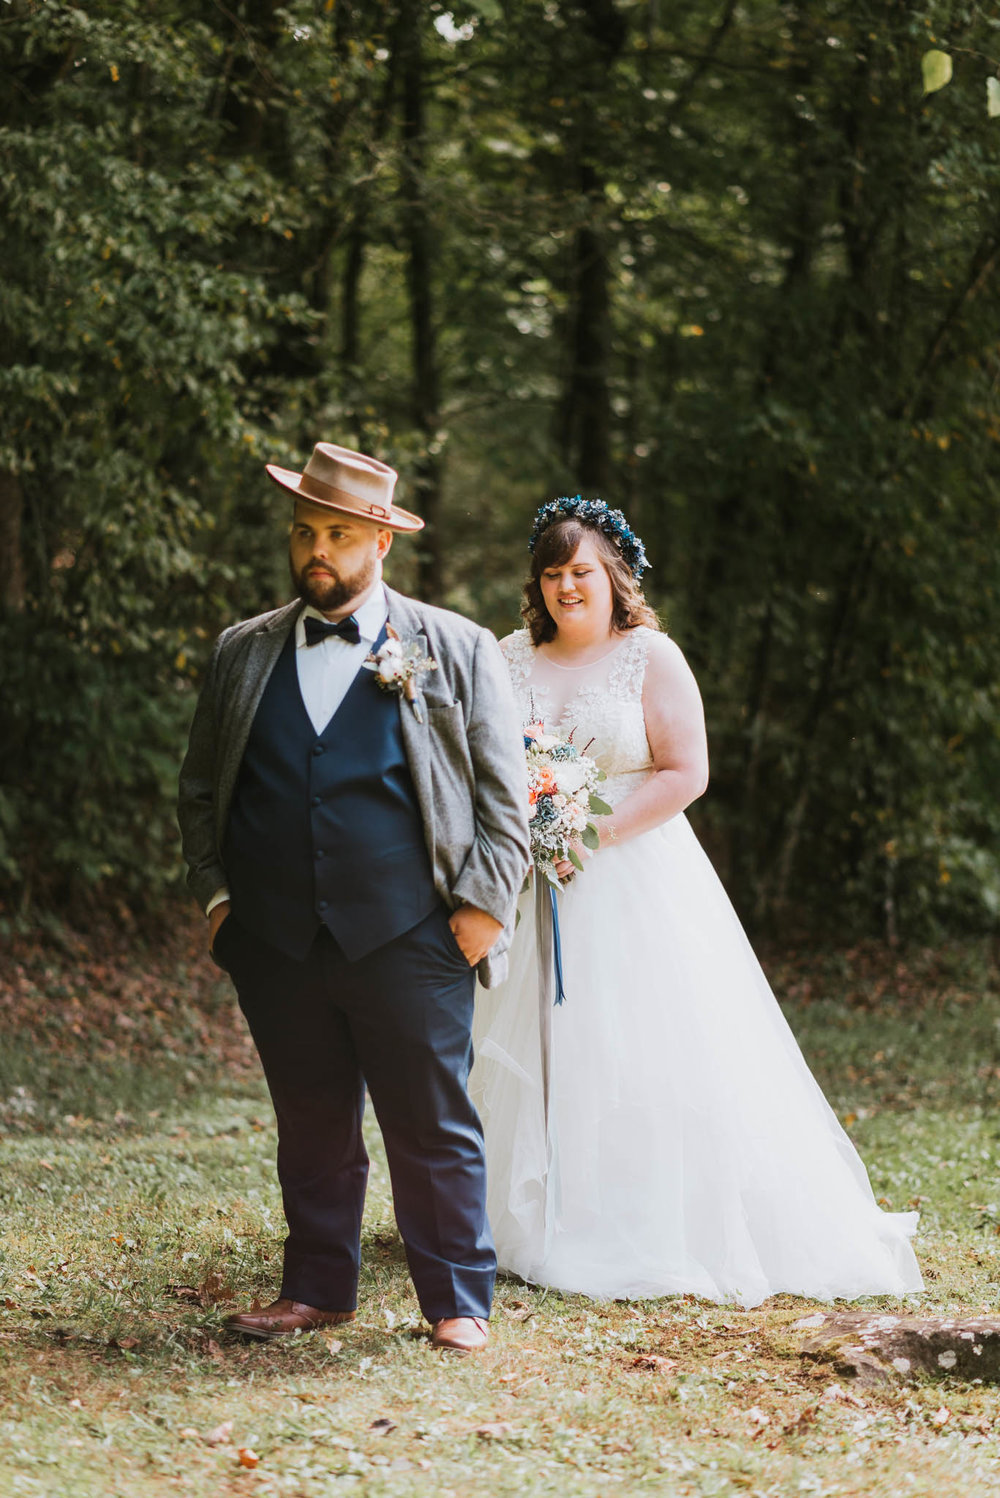 Private Church Wedding, Knoxville, TN, Northeast Tennessee Wedding Photographer, East Tennessee Wedding Photographer, Knoxville, TN Wedding Photographer